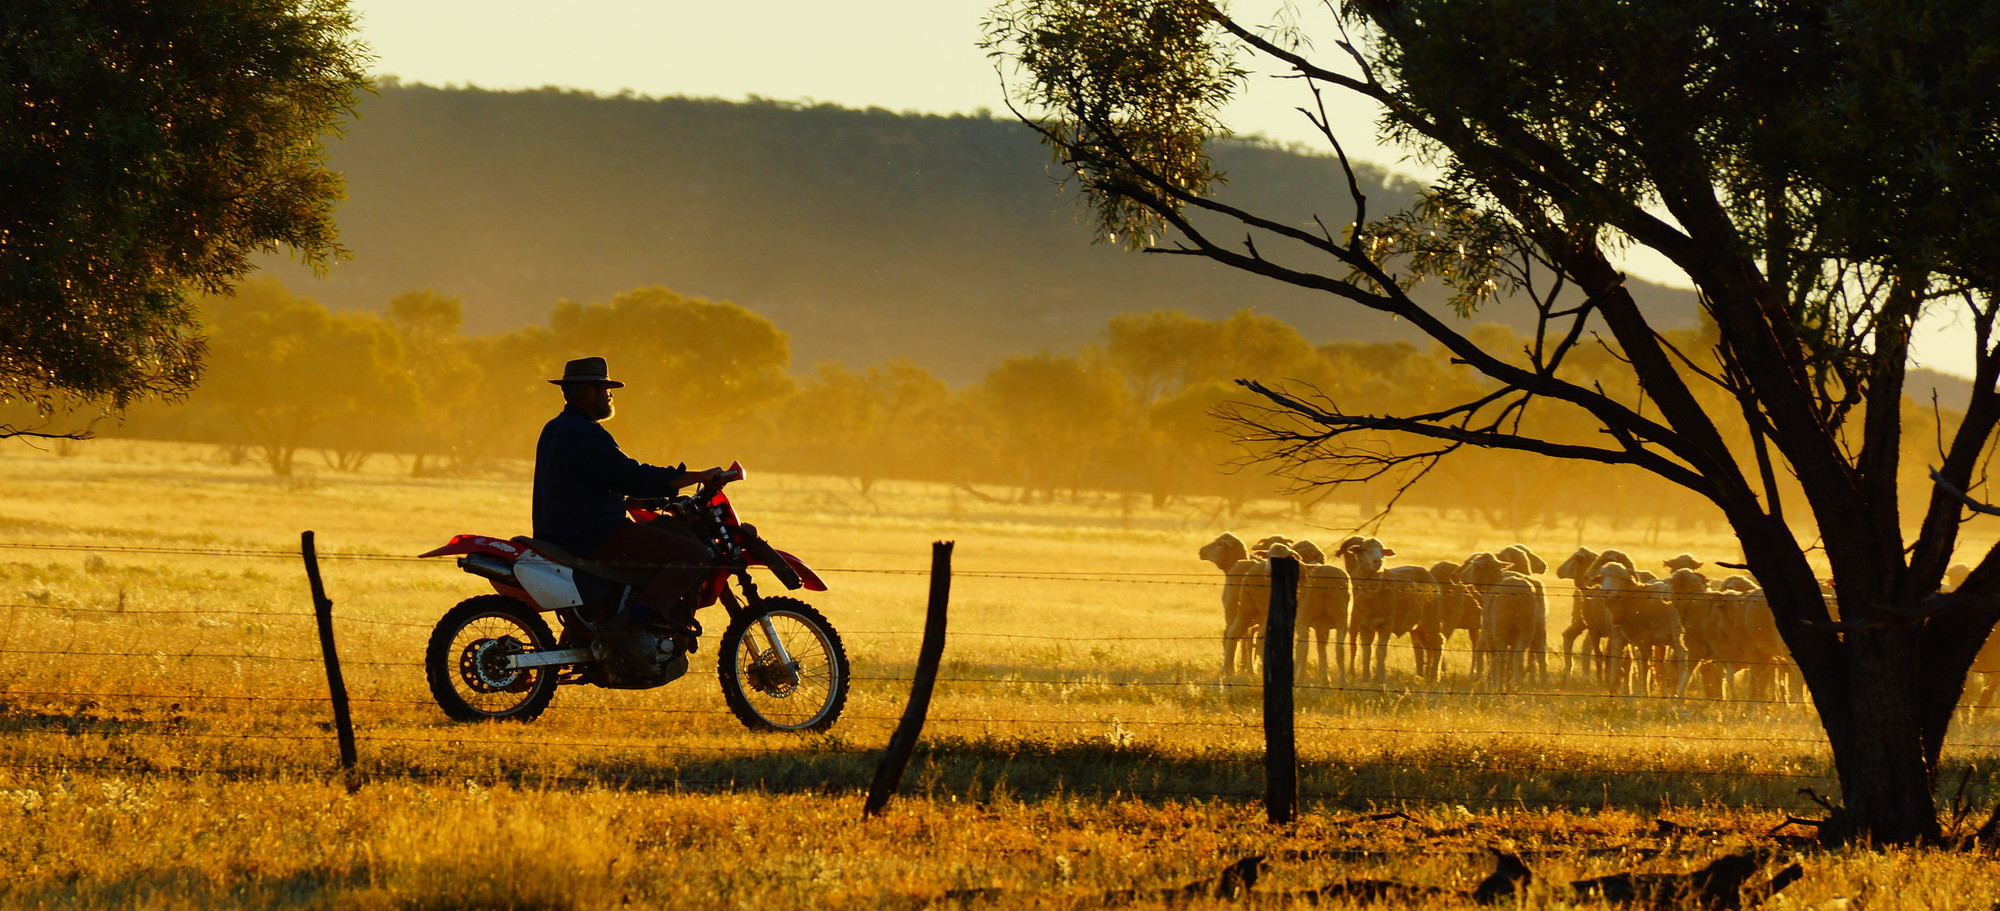 Queensland election: Landholders call for $24 million increase in Nature Refuge funding to protect wildlife and create work in regional areas